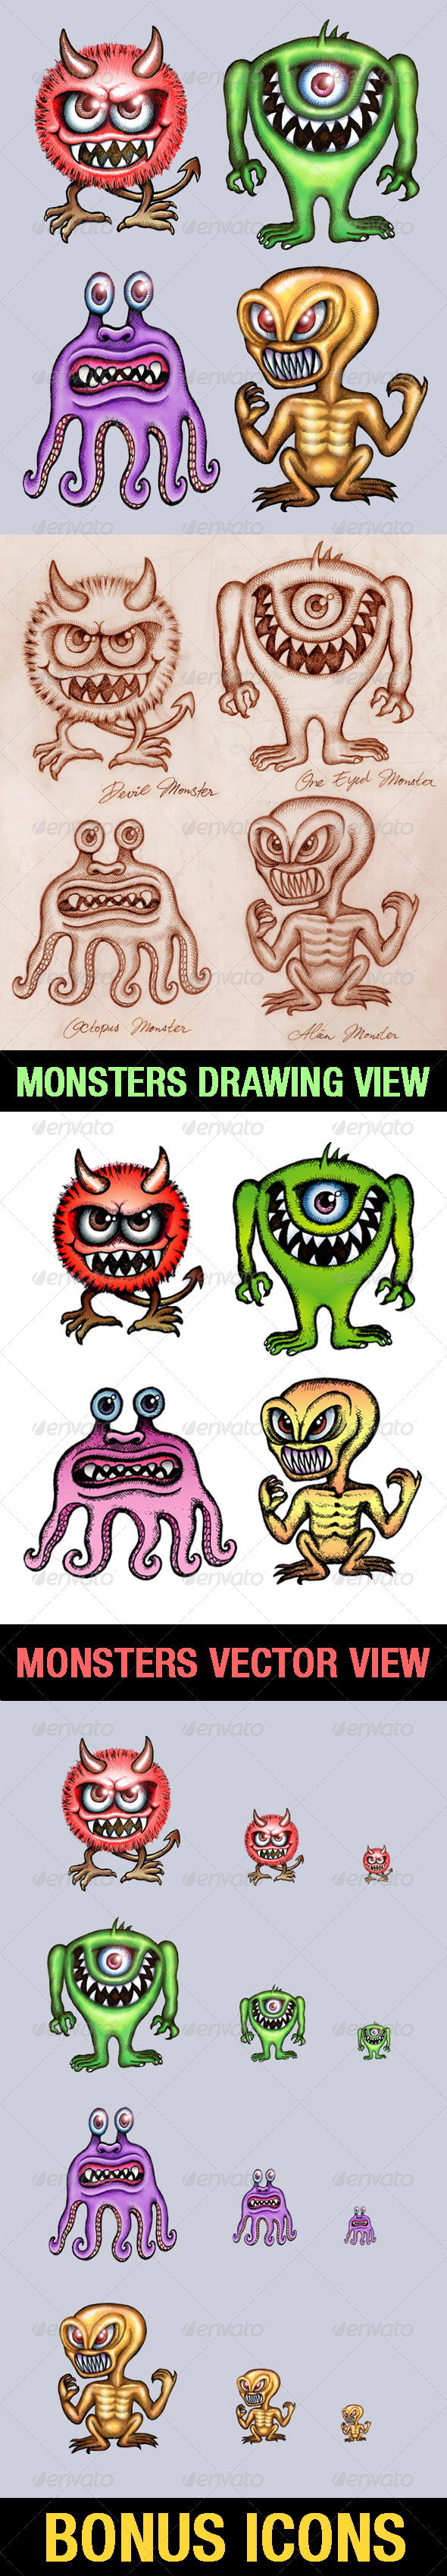 4 Monsters Illustration - Monsters Characters